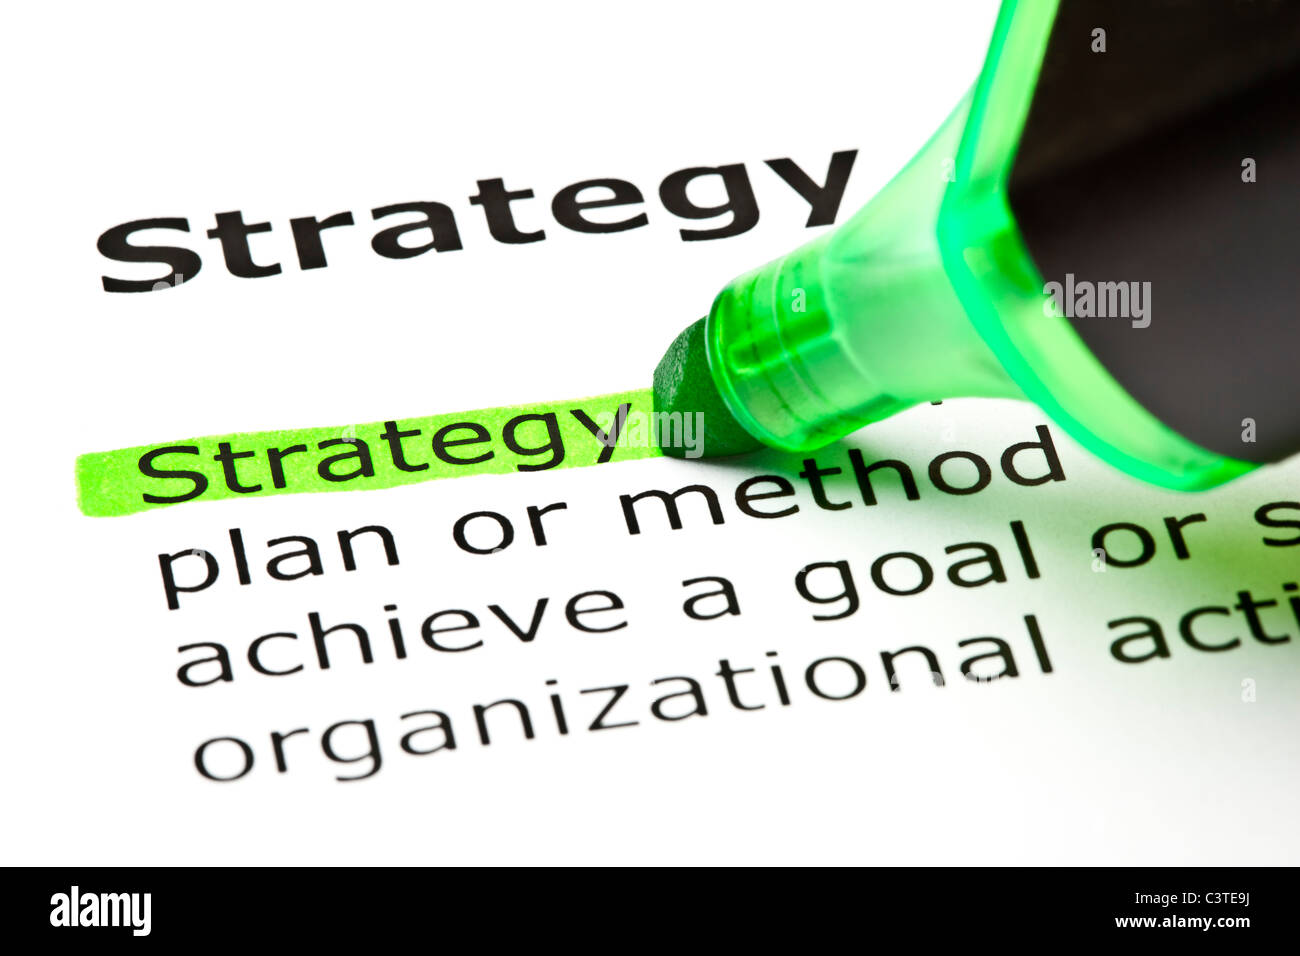 The word 'Strategy' highlighted in green with felt tip pen - Stock Image